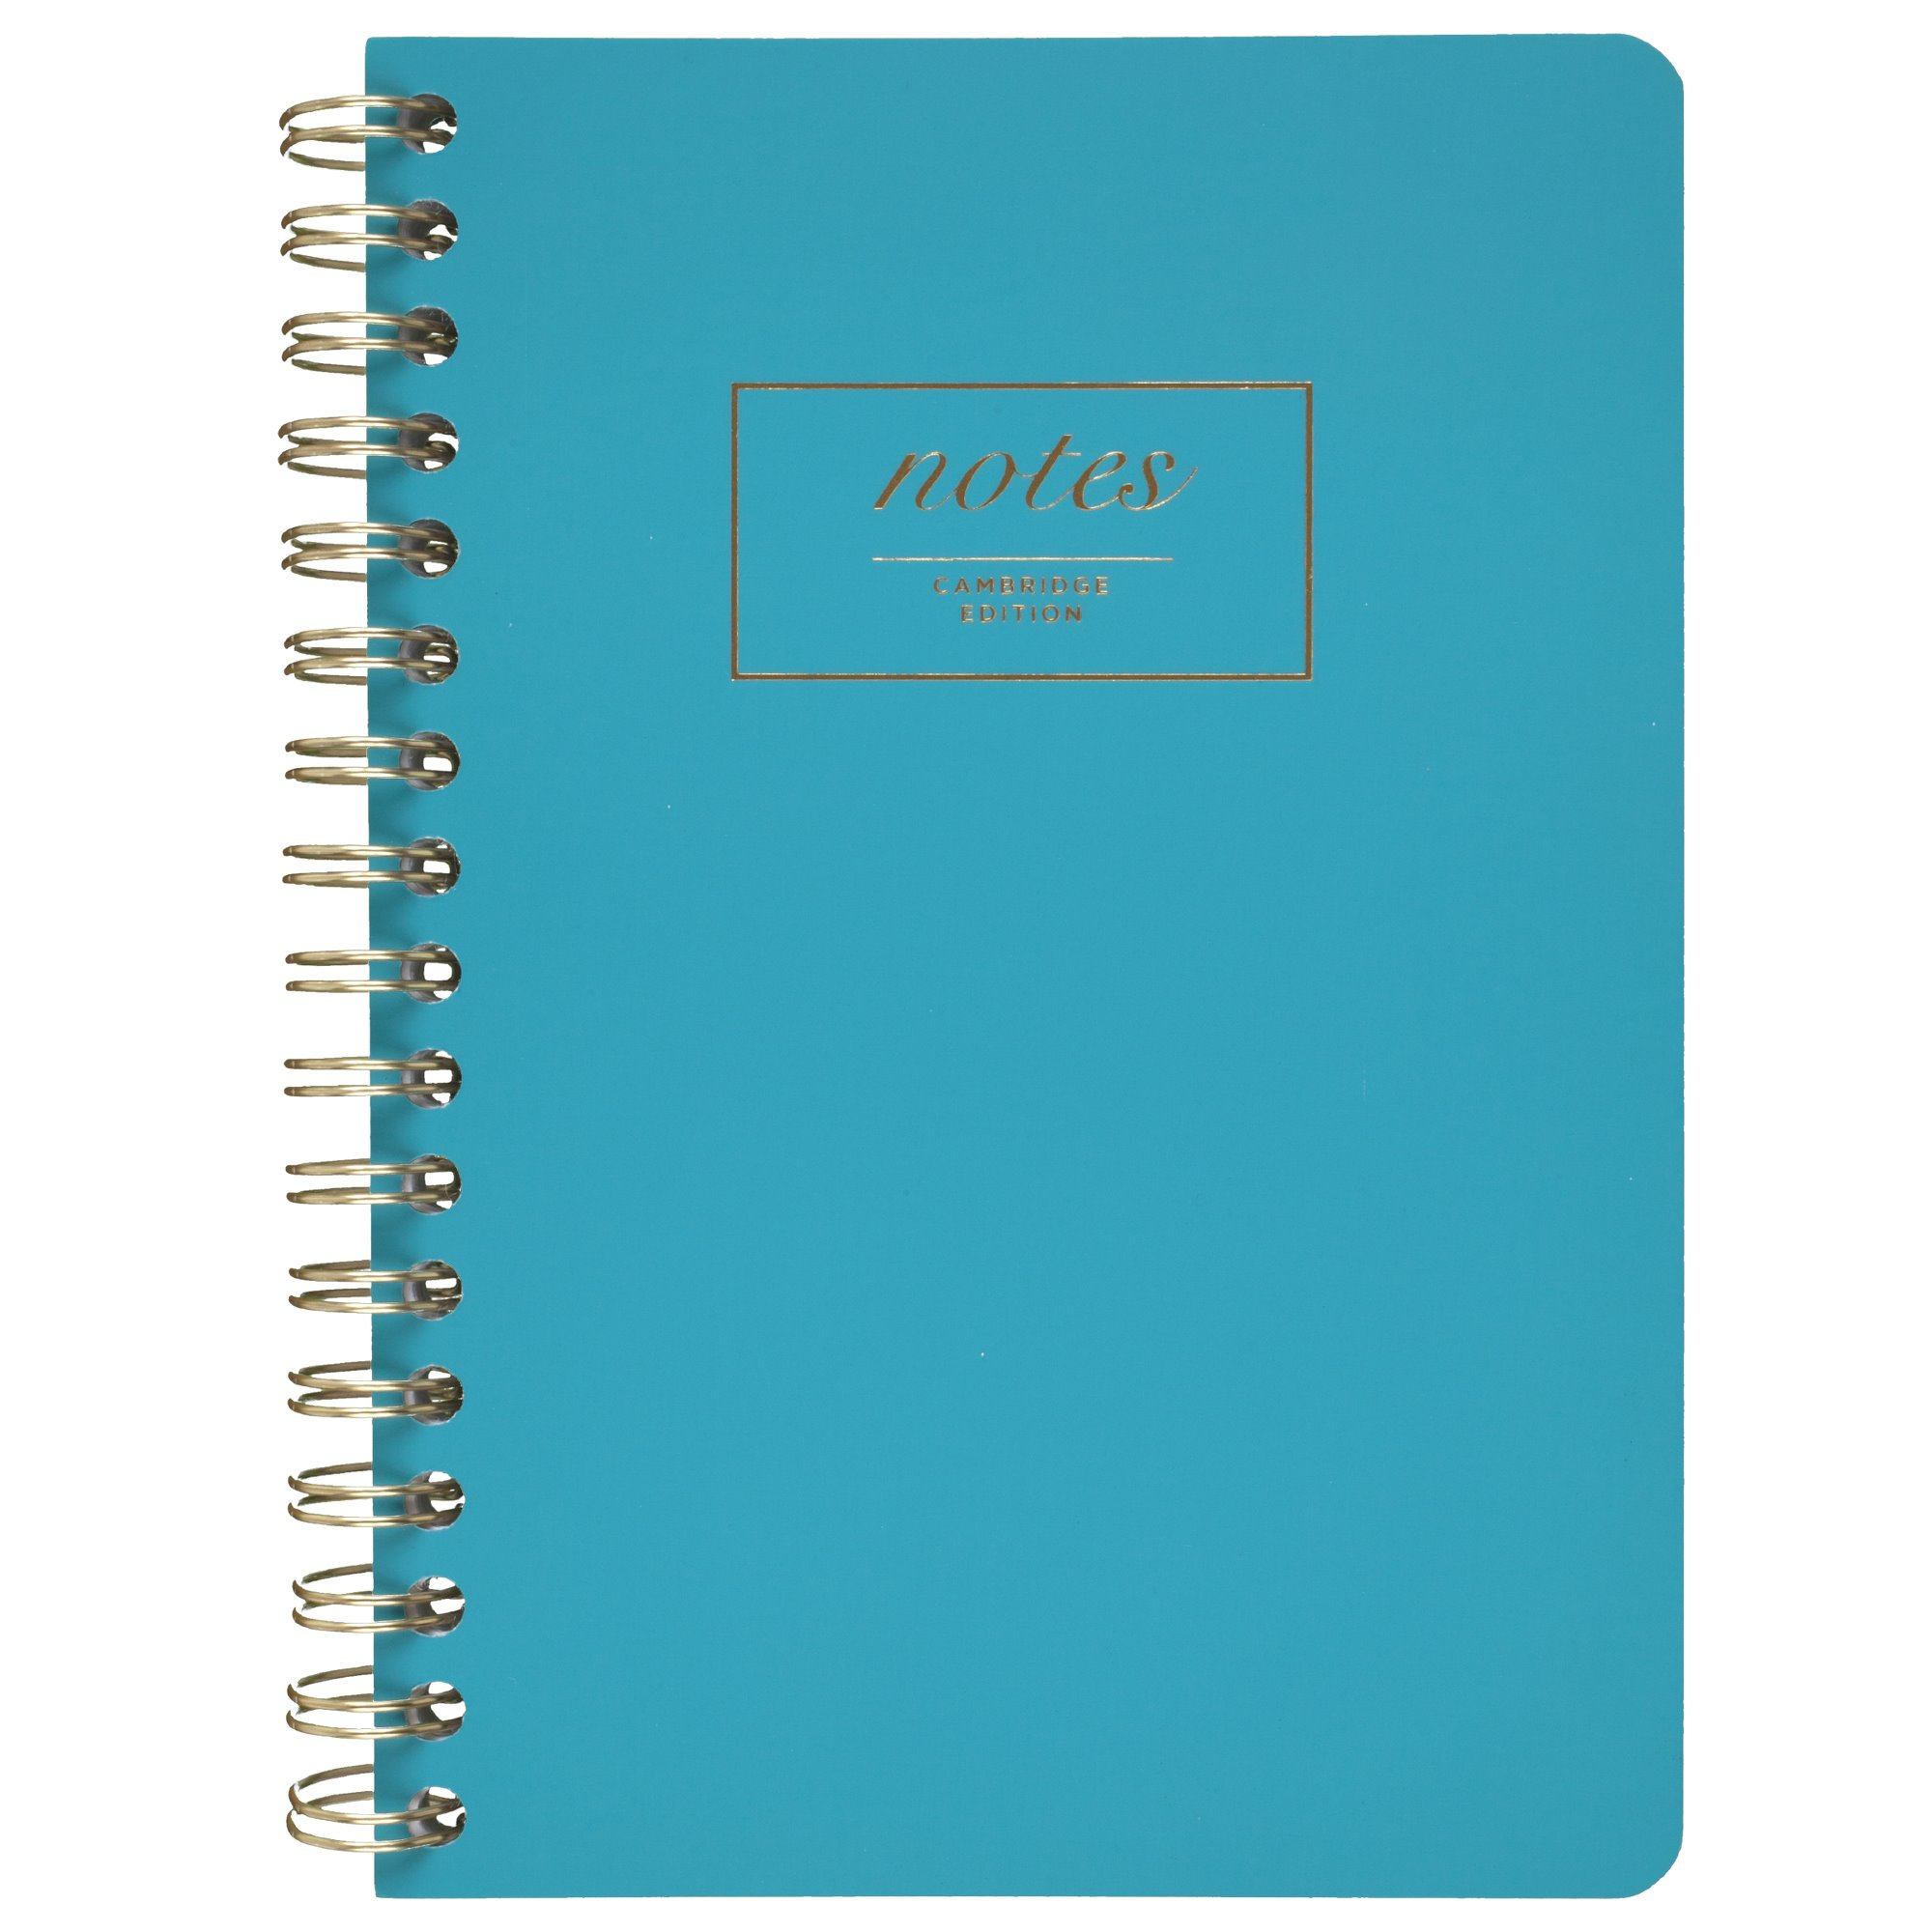 Cambridge Fashion Twinwire Business Notebook - Business Notebooks